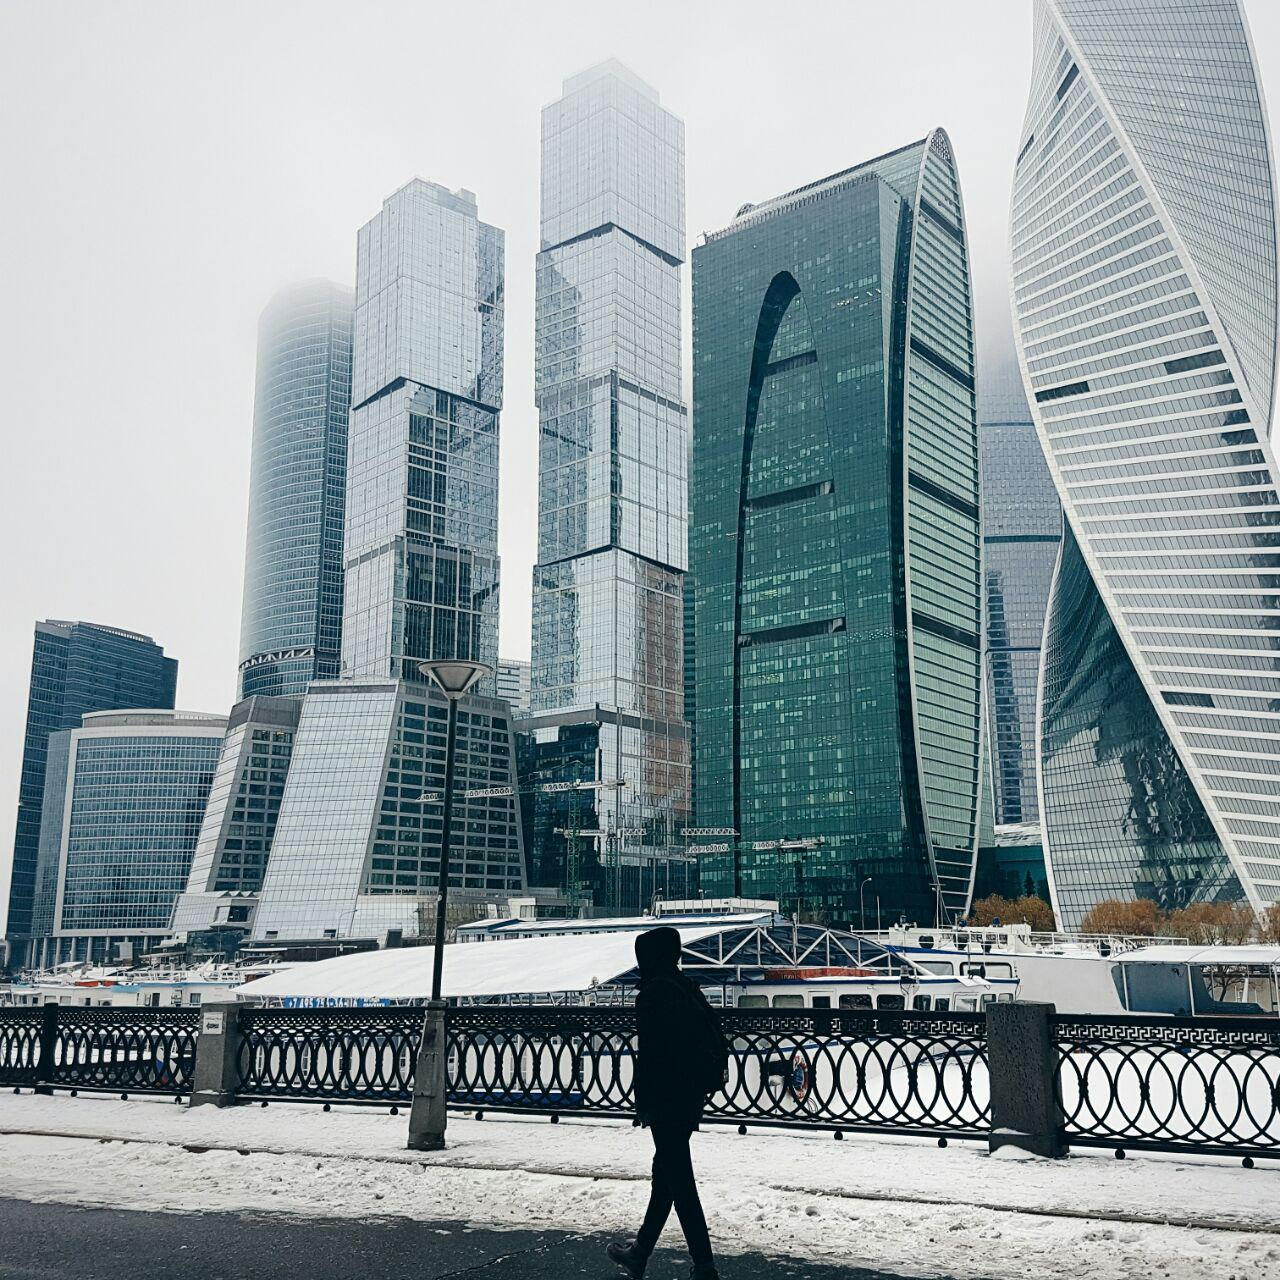 Moscow skyline skyscrapers the City